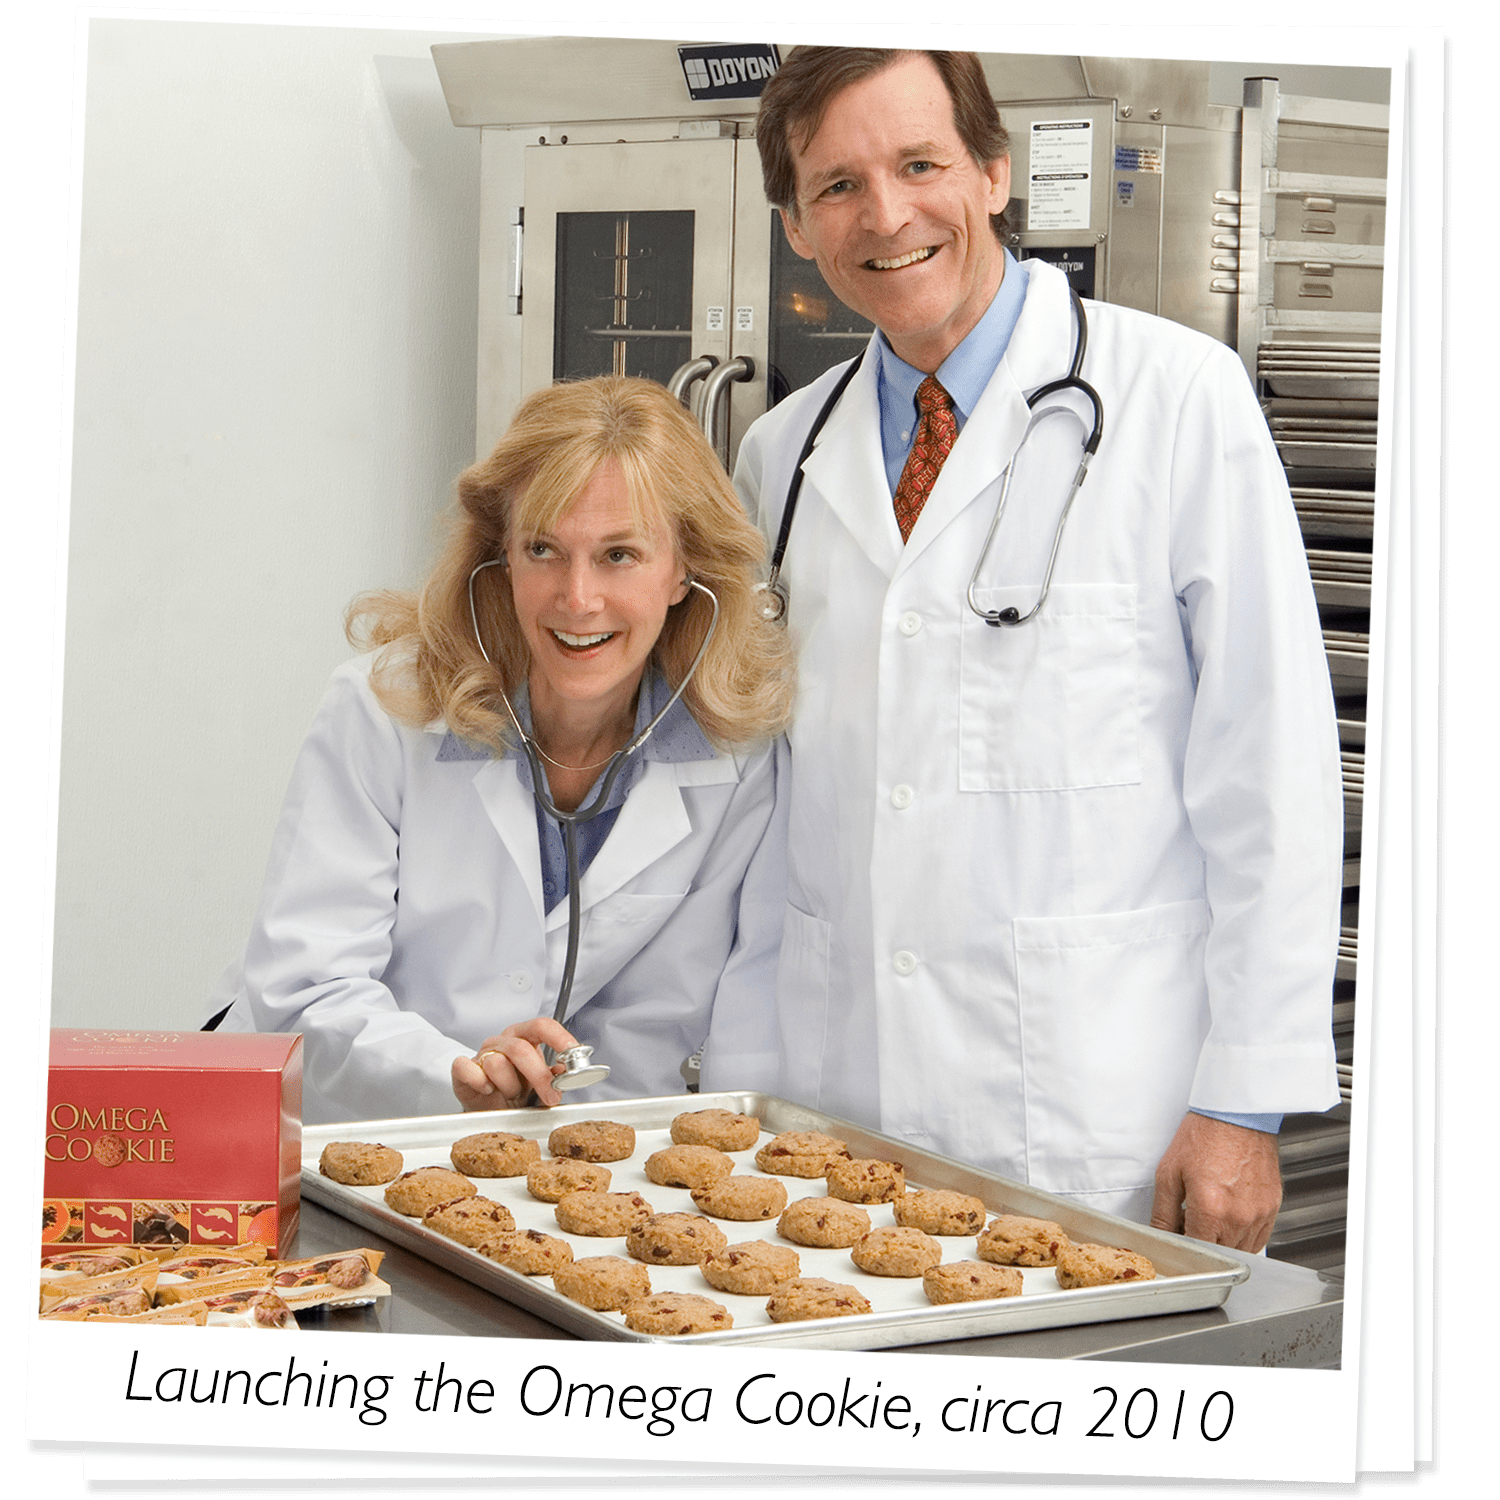 About Us | Launching the Omega Cookie